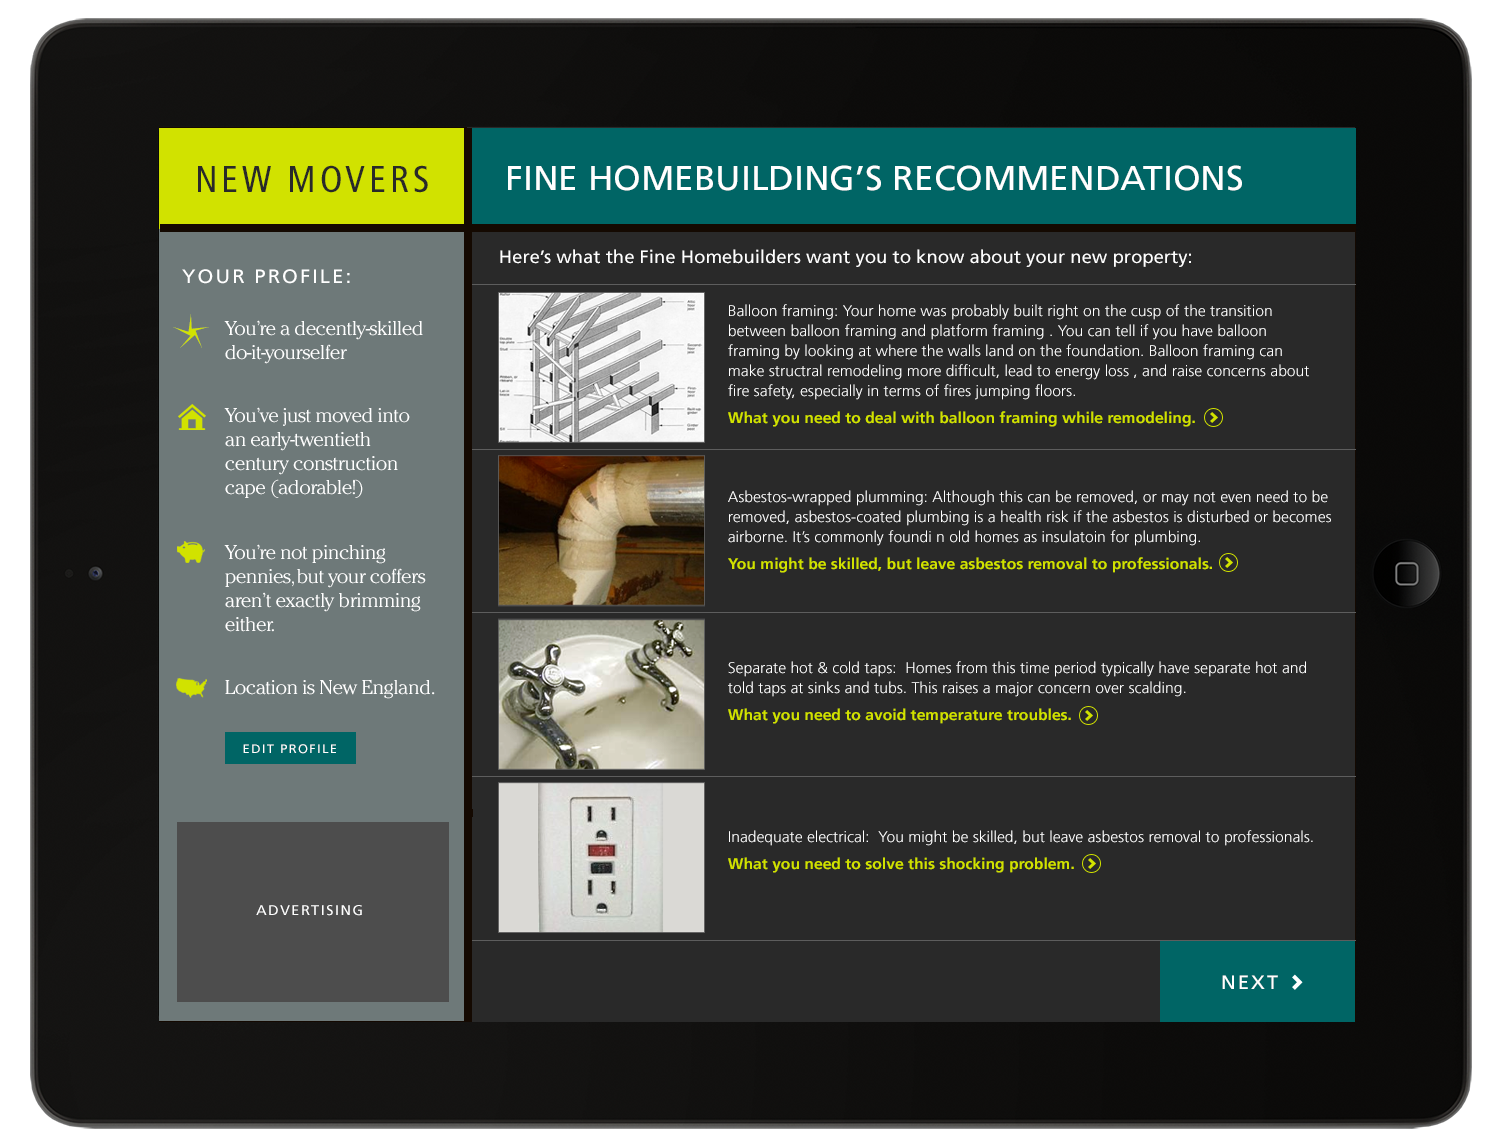 NewMovers_new_recommend1.png